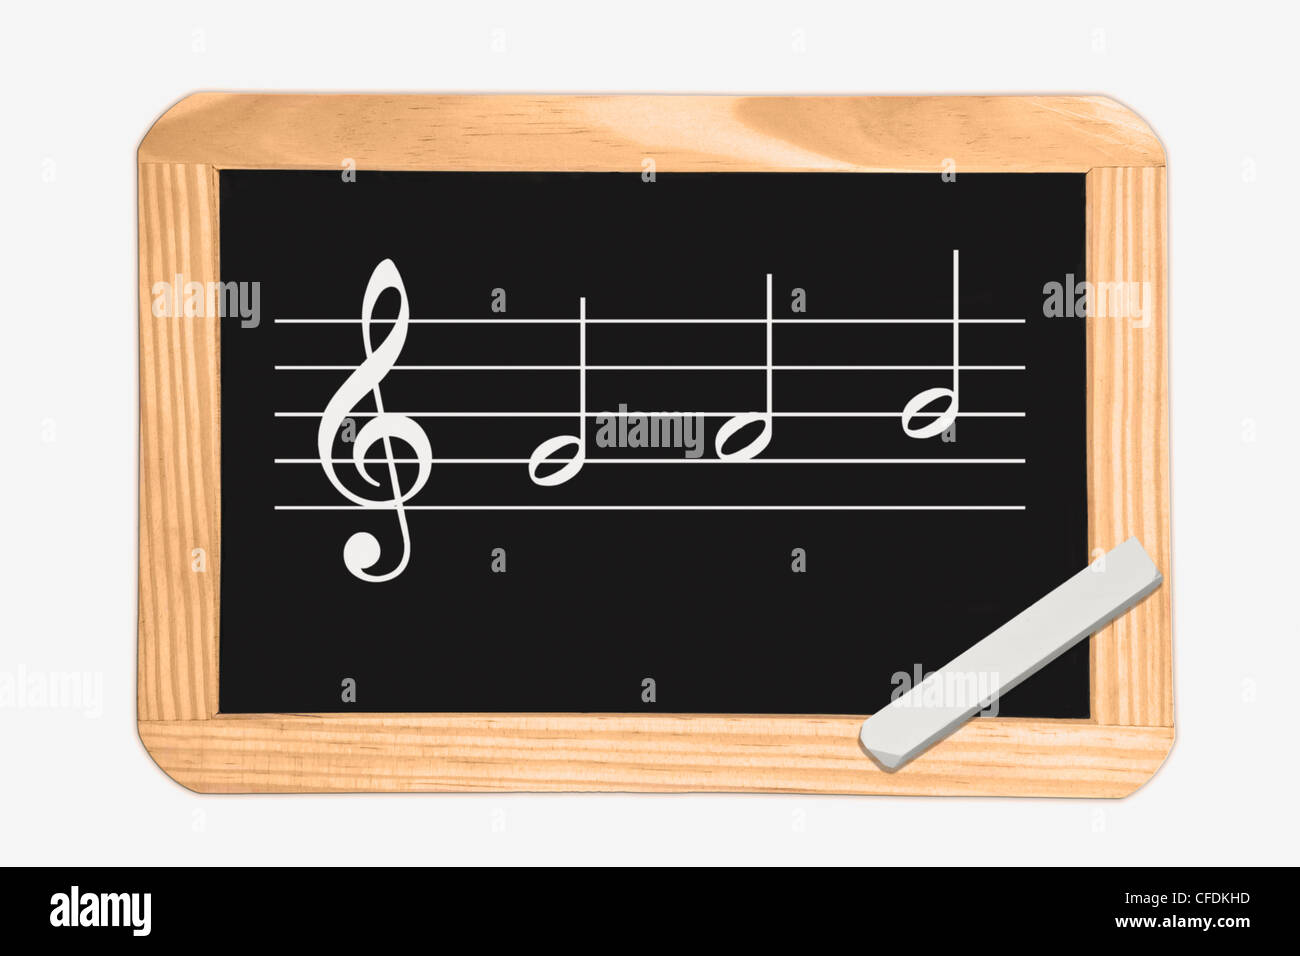 Detail photo of a chalkboard with a clef and a scale, white chalk lies in a corner, background white. - Stock Image